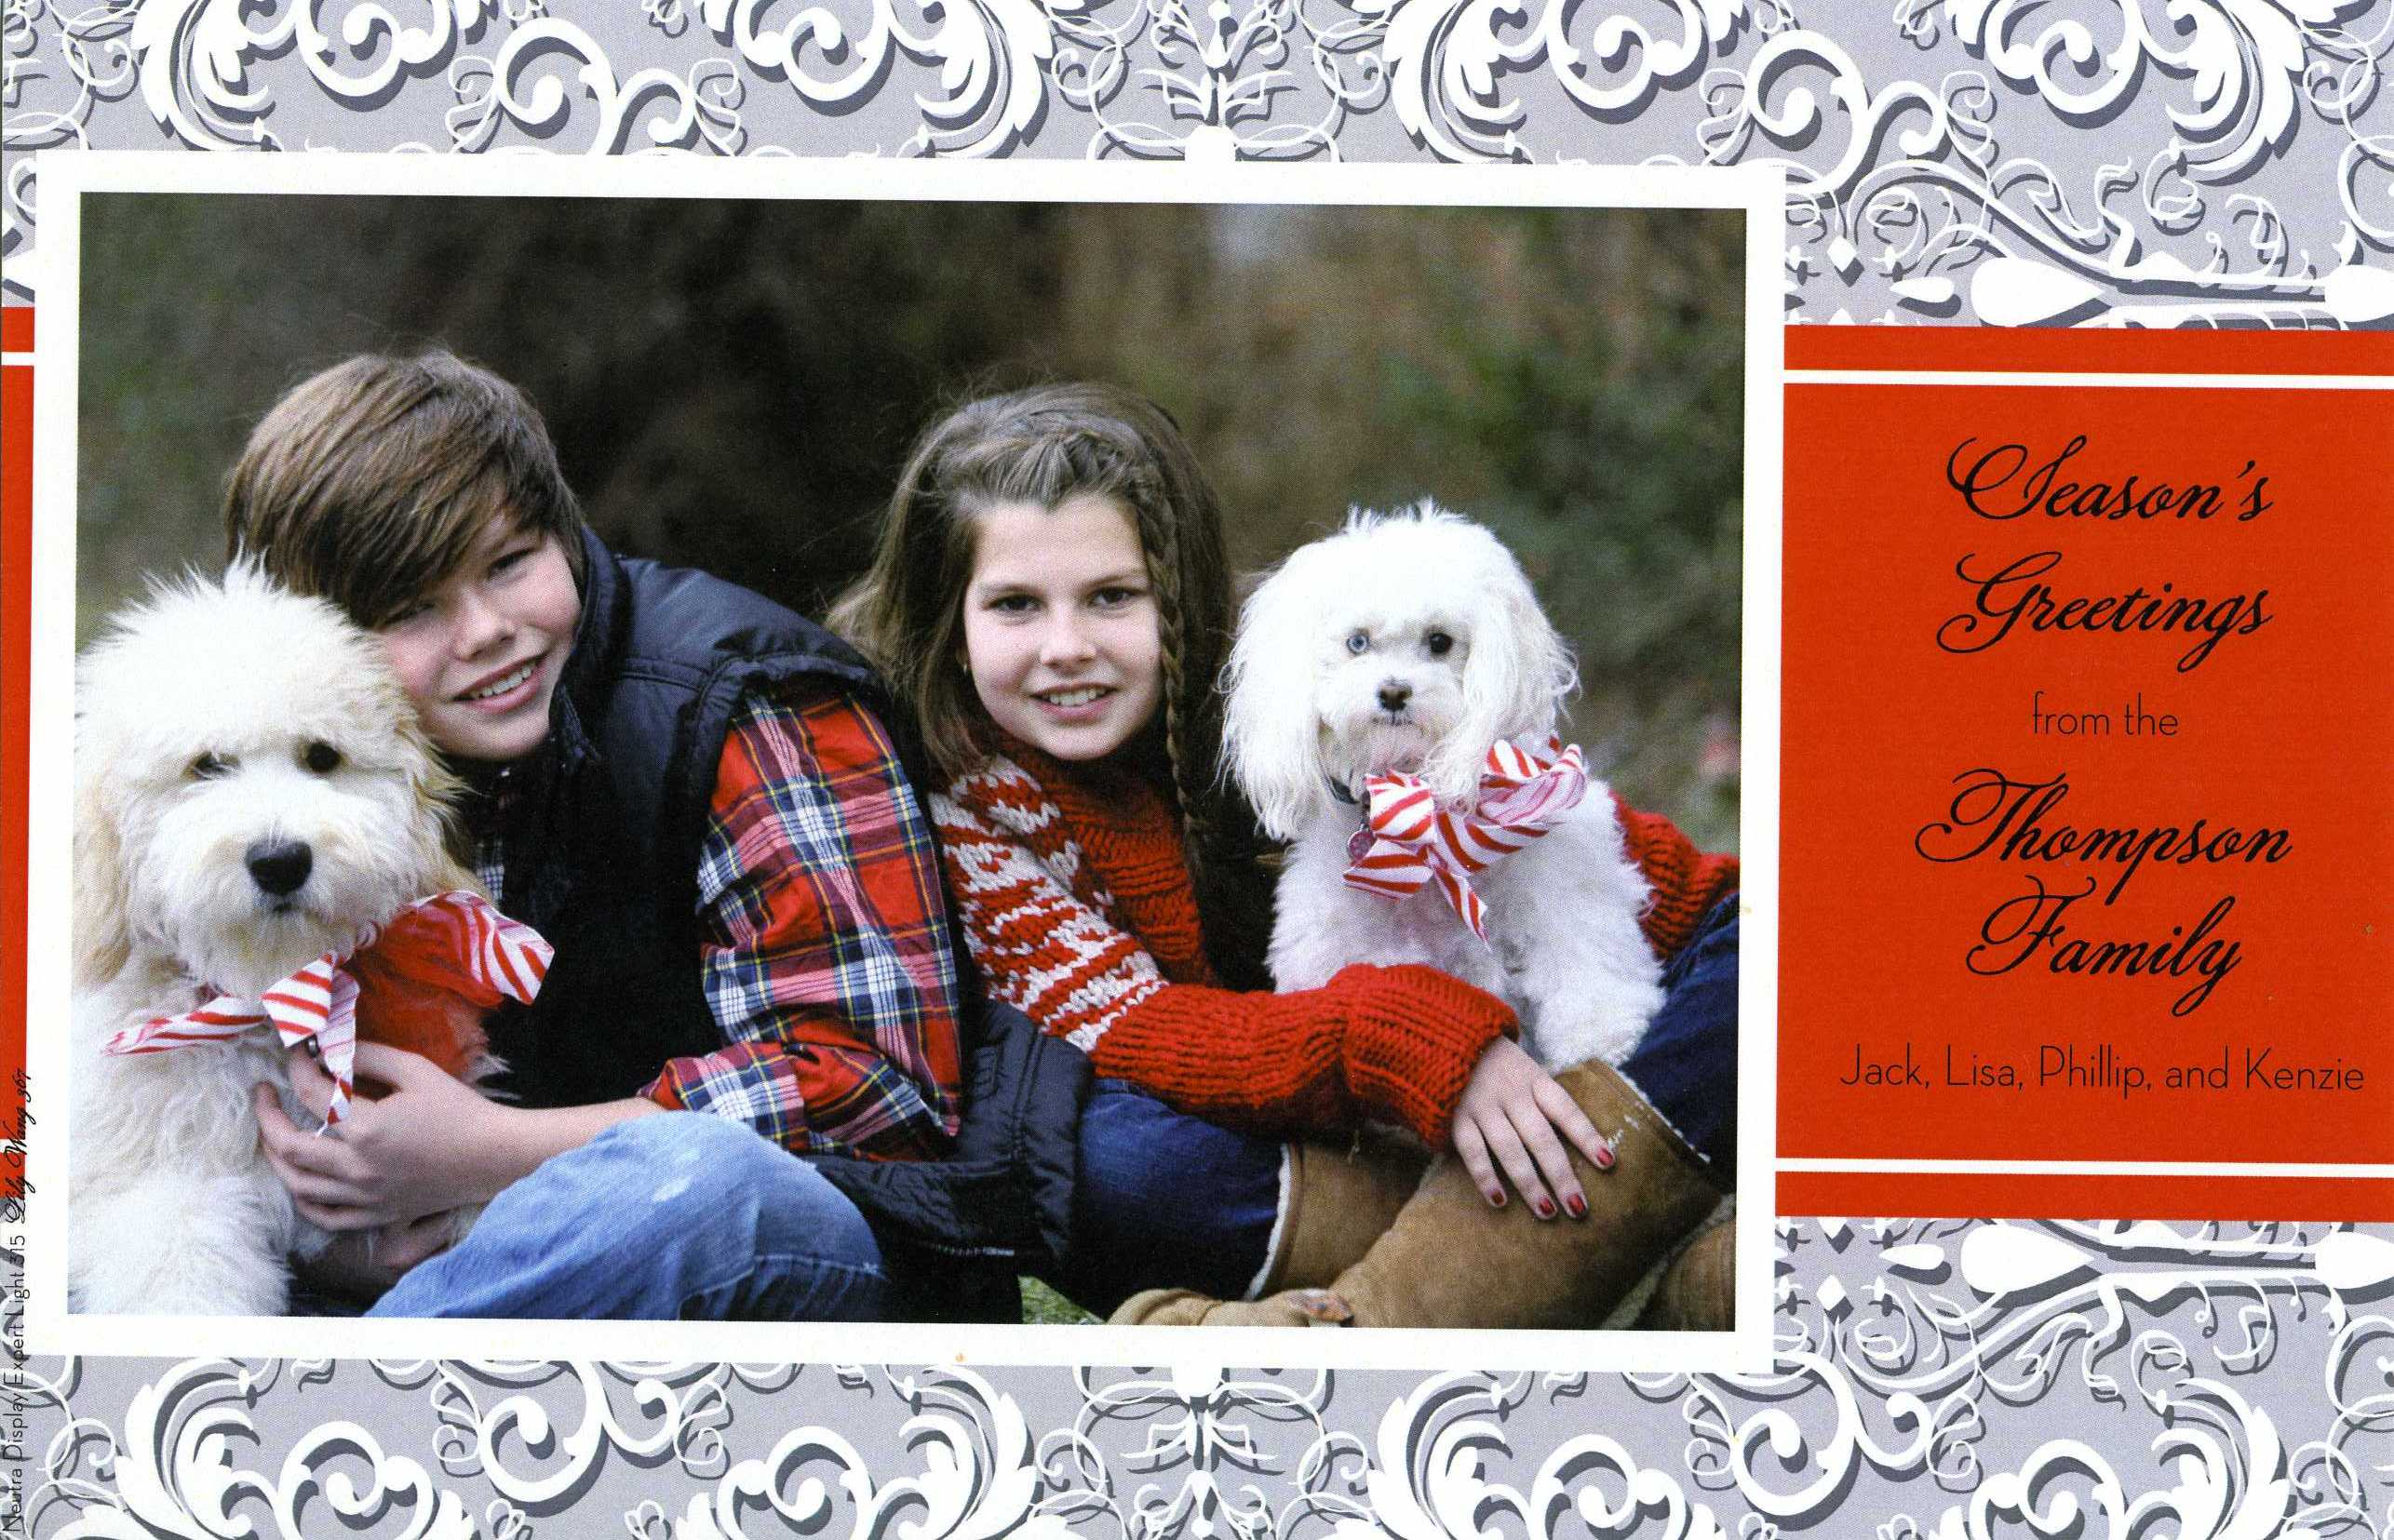 Organza Snow Holiday Flat Card - This elegant holiday flat card has a festive grey and white patterned border with a red text area next to your photo.  What a beautiful way to bring a personal touch to your holiday cards this year!  Includes white envelope.